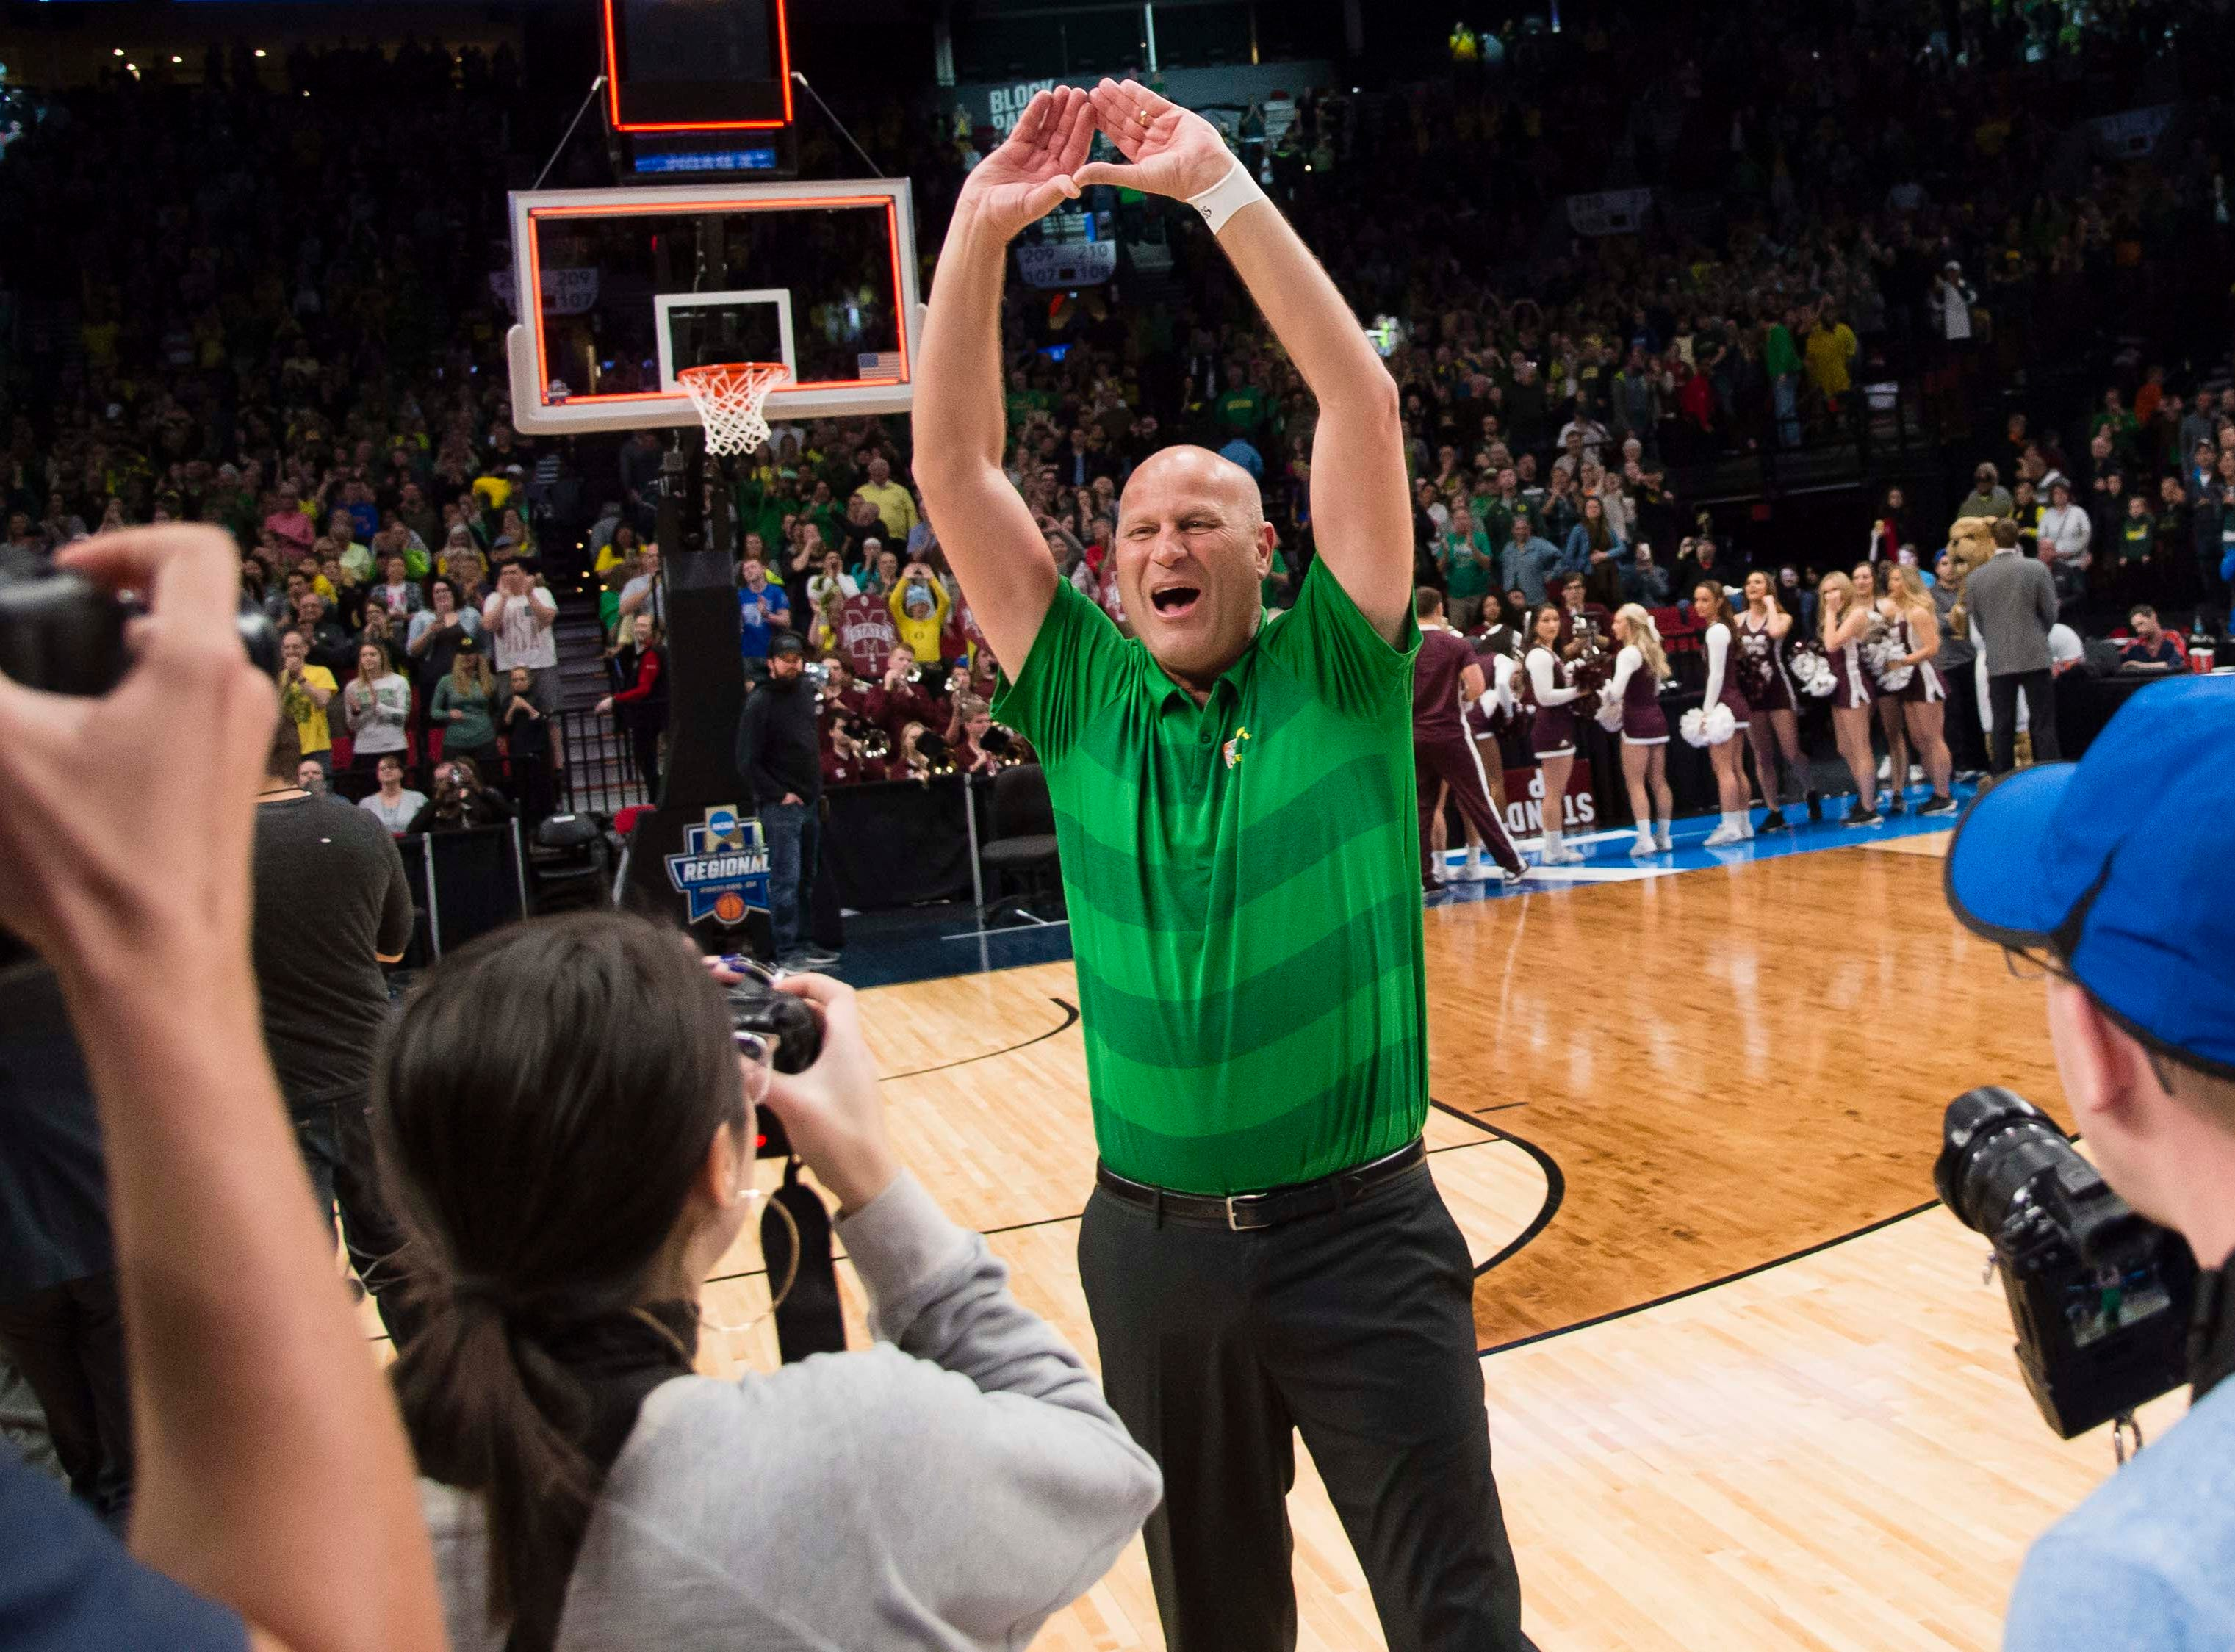 Oregon Ducks head coach Kelly Graves celebrates after a game against the Mississippi State Bulldogs in the championship game of the Portland regional in the women's 2019 NCAA Tournament at Moda Center. The Oregon Ducks beat the Mississippi State Bulldogs 88-84.